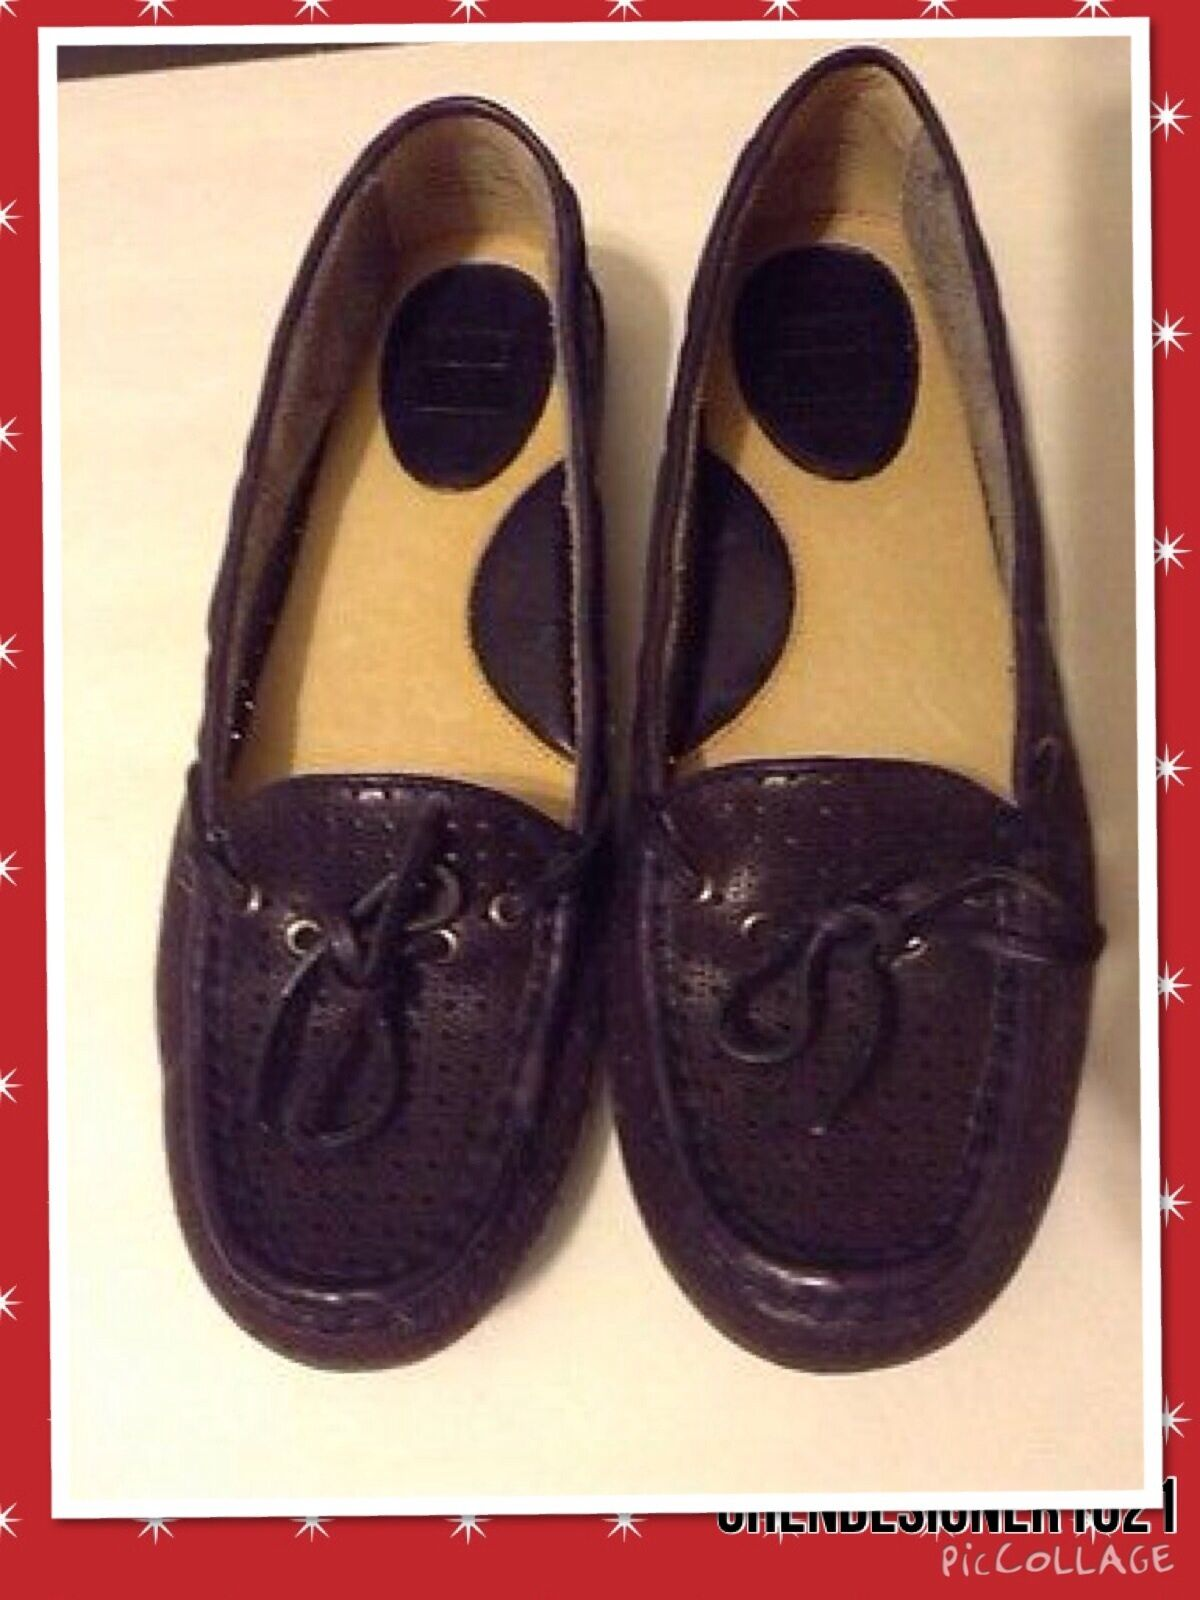 New FYRE 6.5,8m US REAGAN PERFORATED PERFORATED PERFORATED DRIVER DK PURPLE LTHR LOAFERS 2a05ae